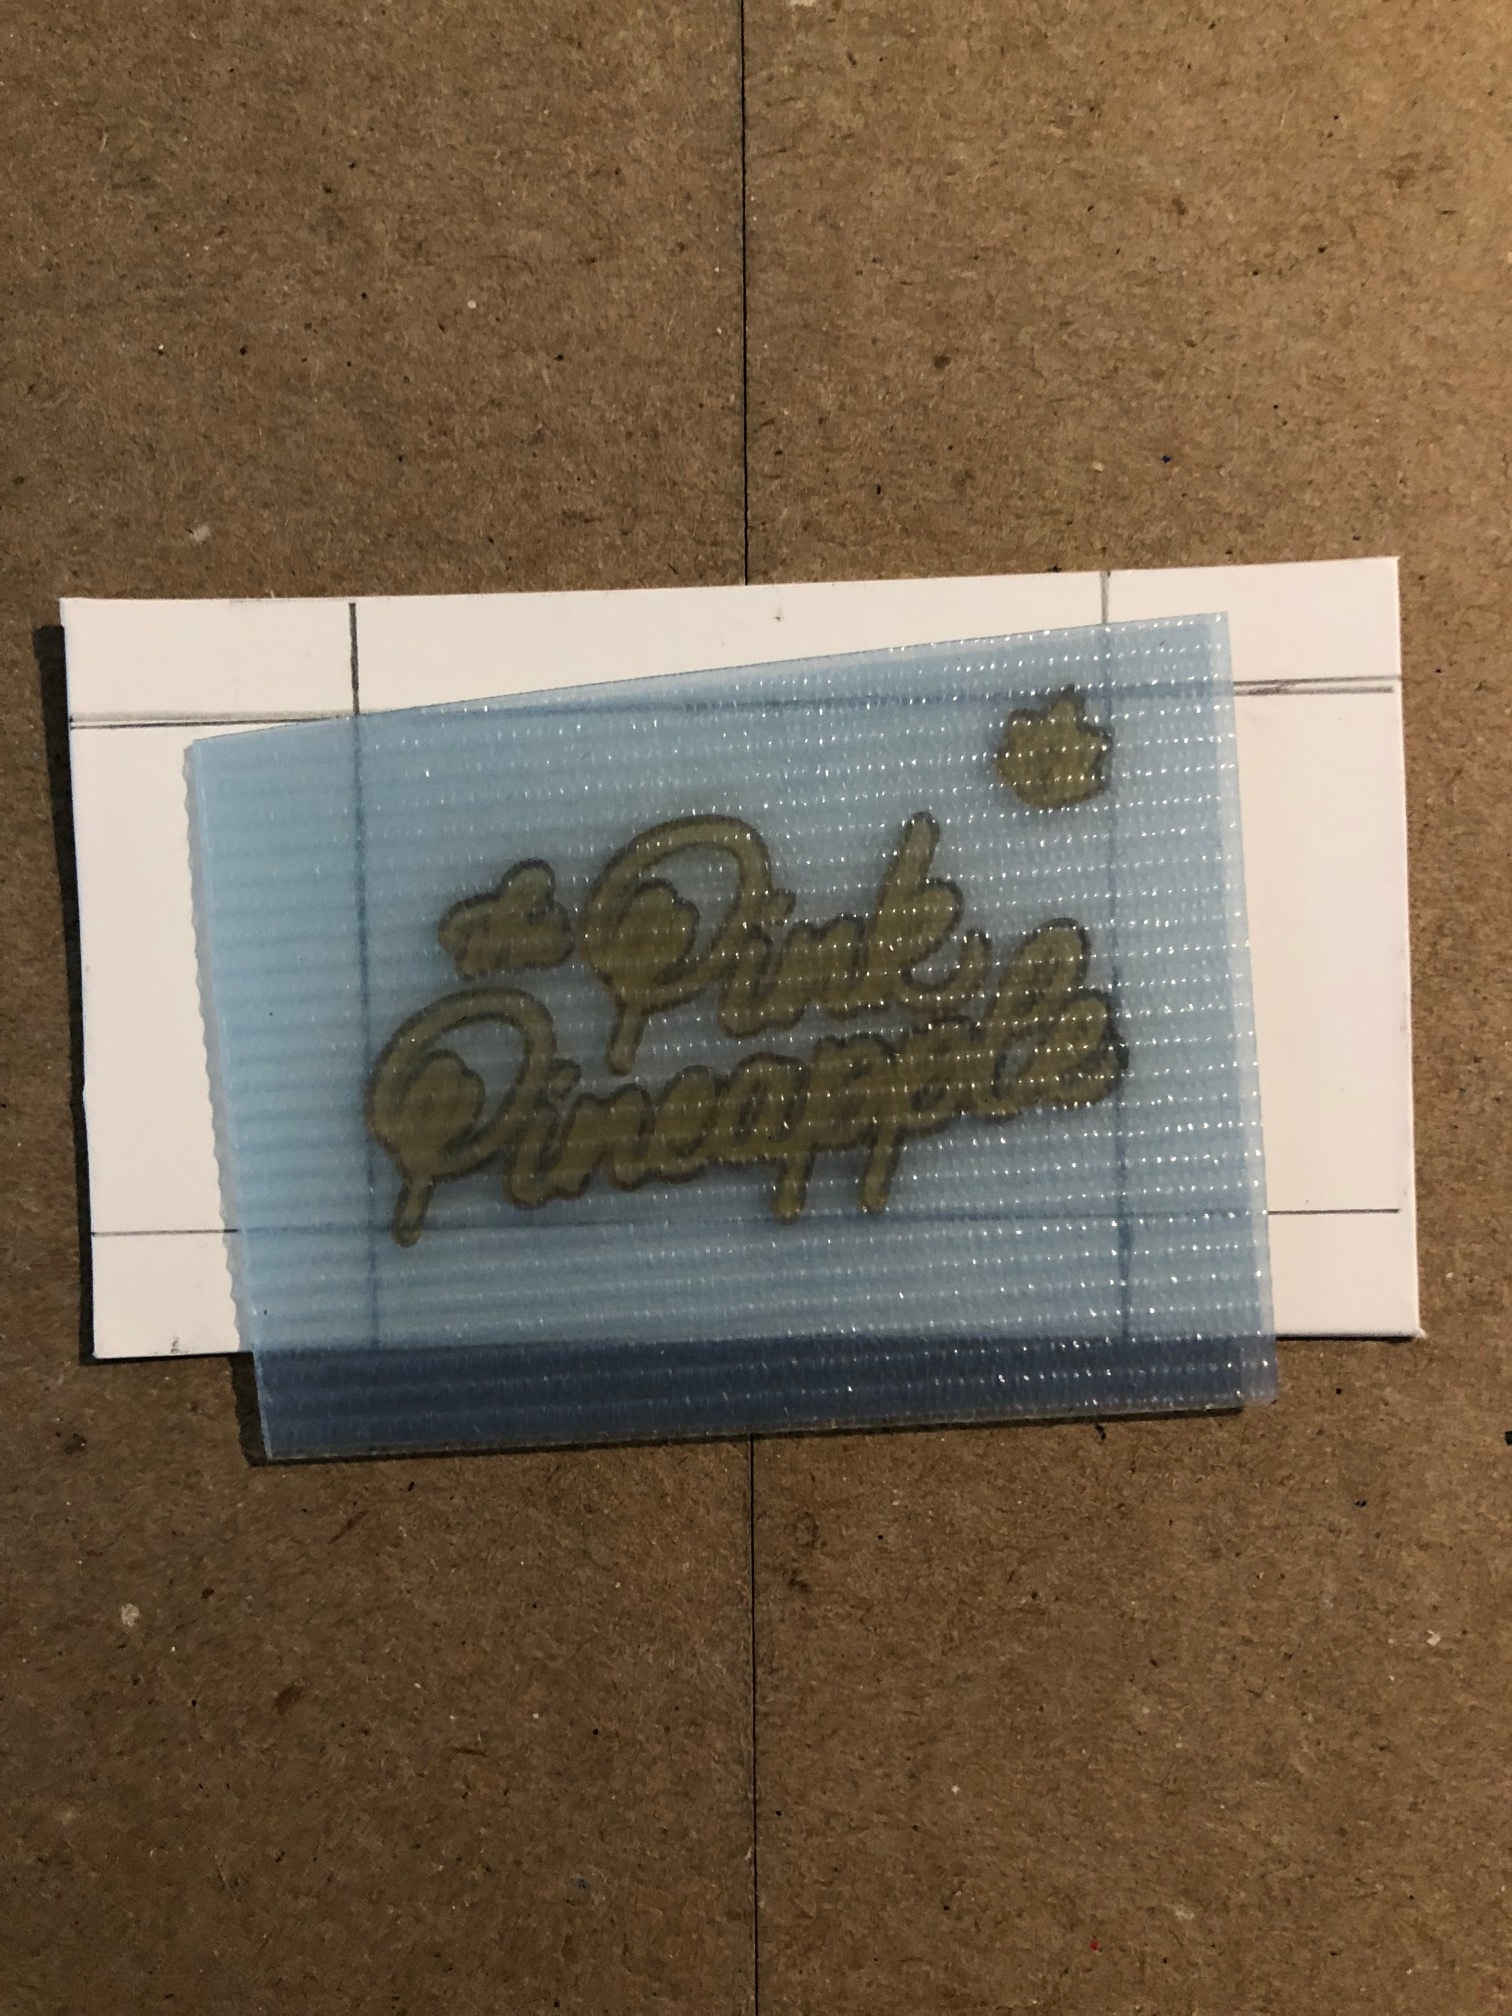 This is a snap shot of a polymer plate being registered to the card. ALL DIGITAL DESIGNS are made into polymer plates. We then put this plate on the press and print from it. It's tedious and why it has to be done one layer at a time. This polymer plate is for only the black printed area on the front of the card. There is a separate plate for the pineapple itself  and  the back of the card. Since I press one card at a time, and they purchased 1,000 cards. Each card was pressed 3 times (twice on the front, and once on the back). That makes it 3,000 presses total PLUS the extra four color cards I made and 500 two color coasters. So, at least 4,500 presses in the week.